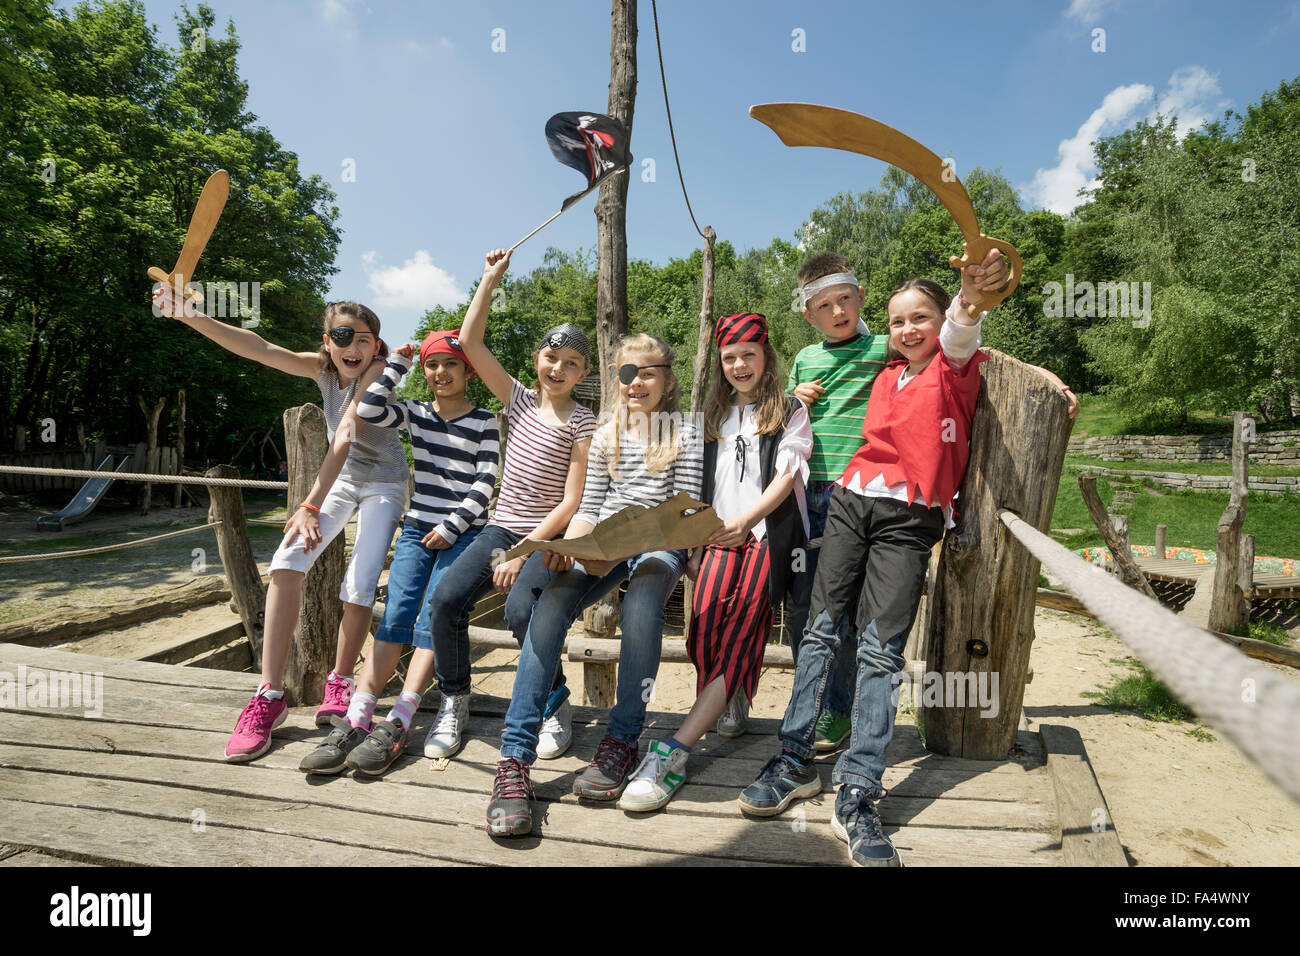 Group of children playing on a pirate ship in adventure playground, Bavaria, Germany - Stock Image